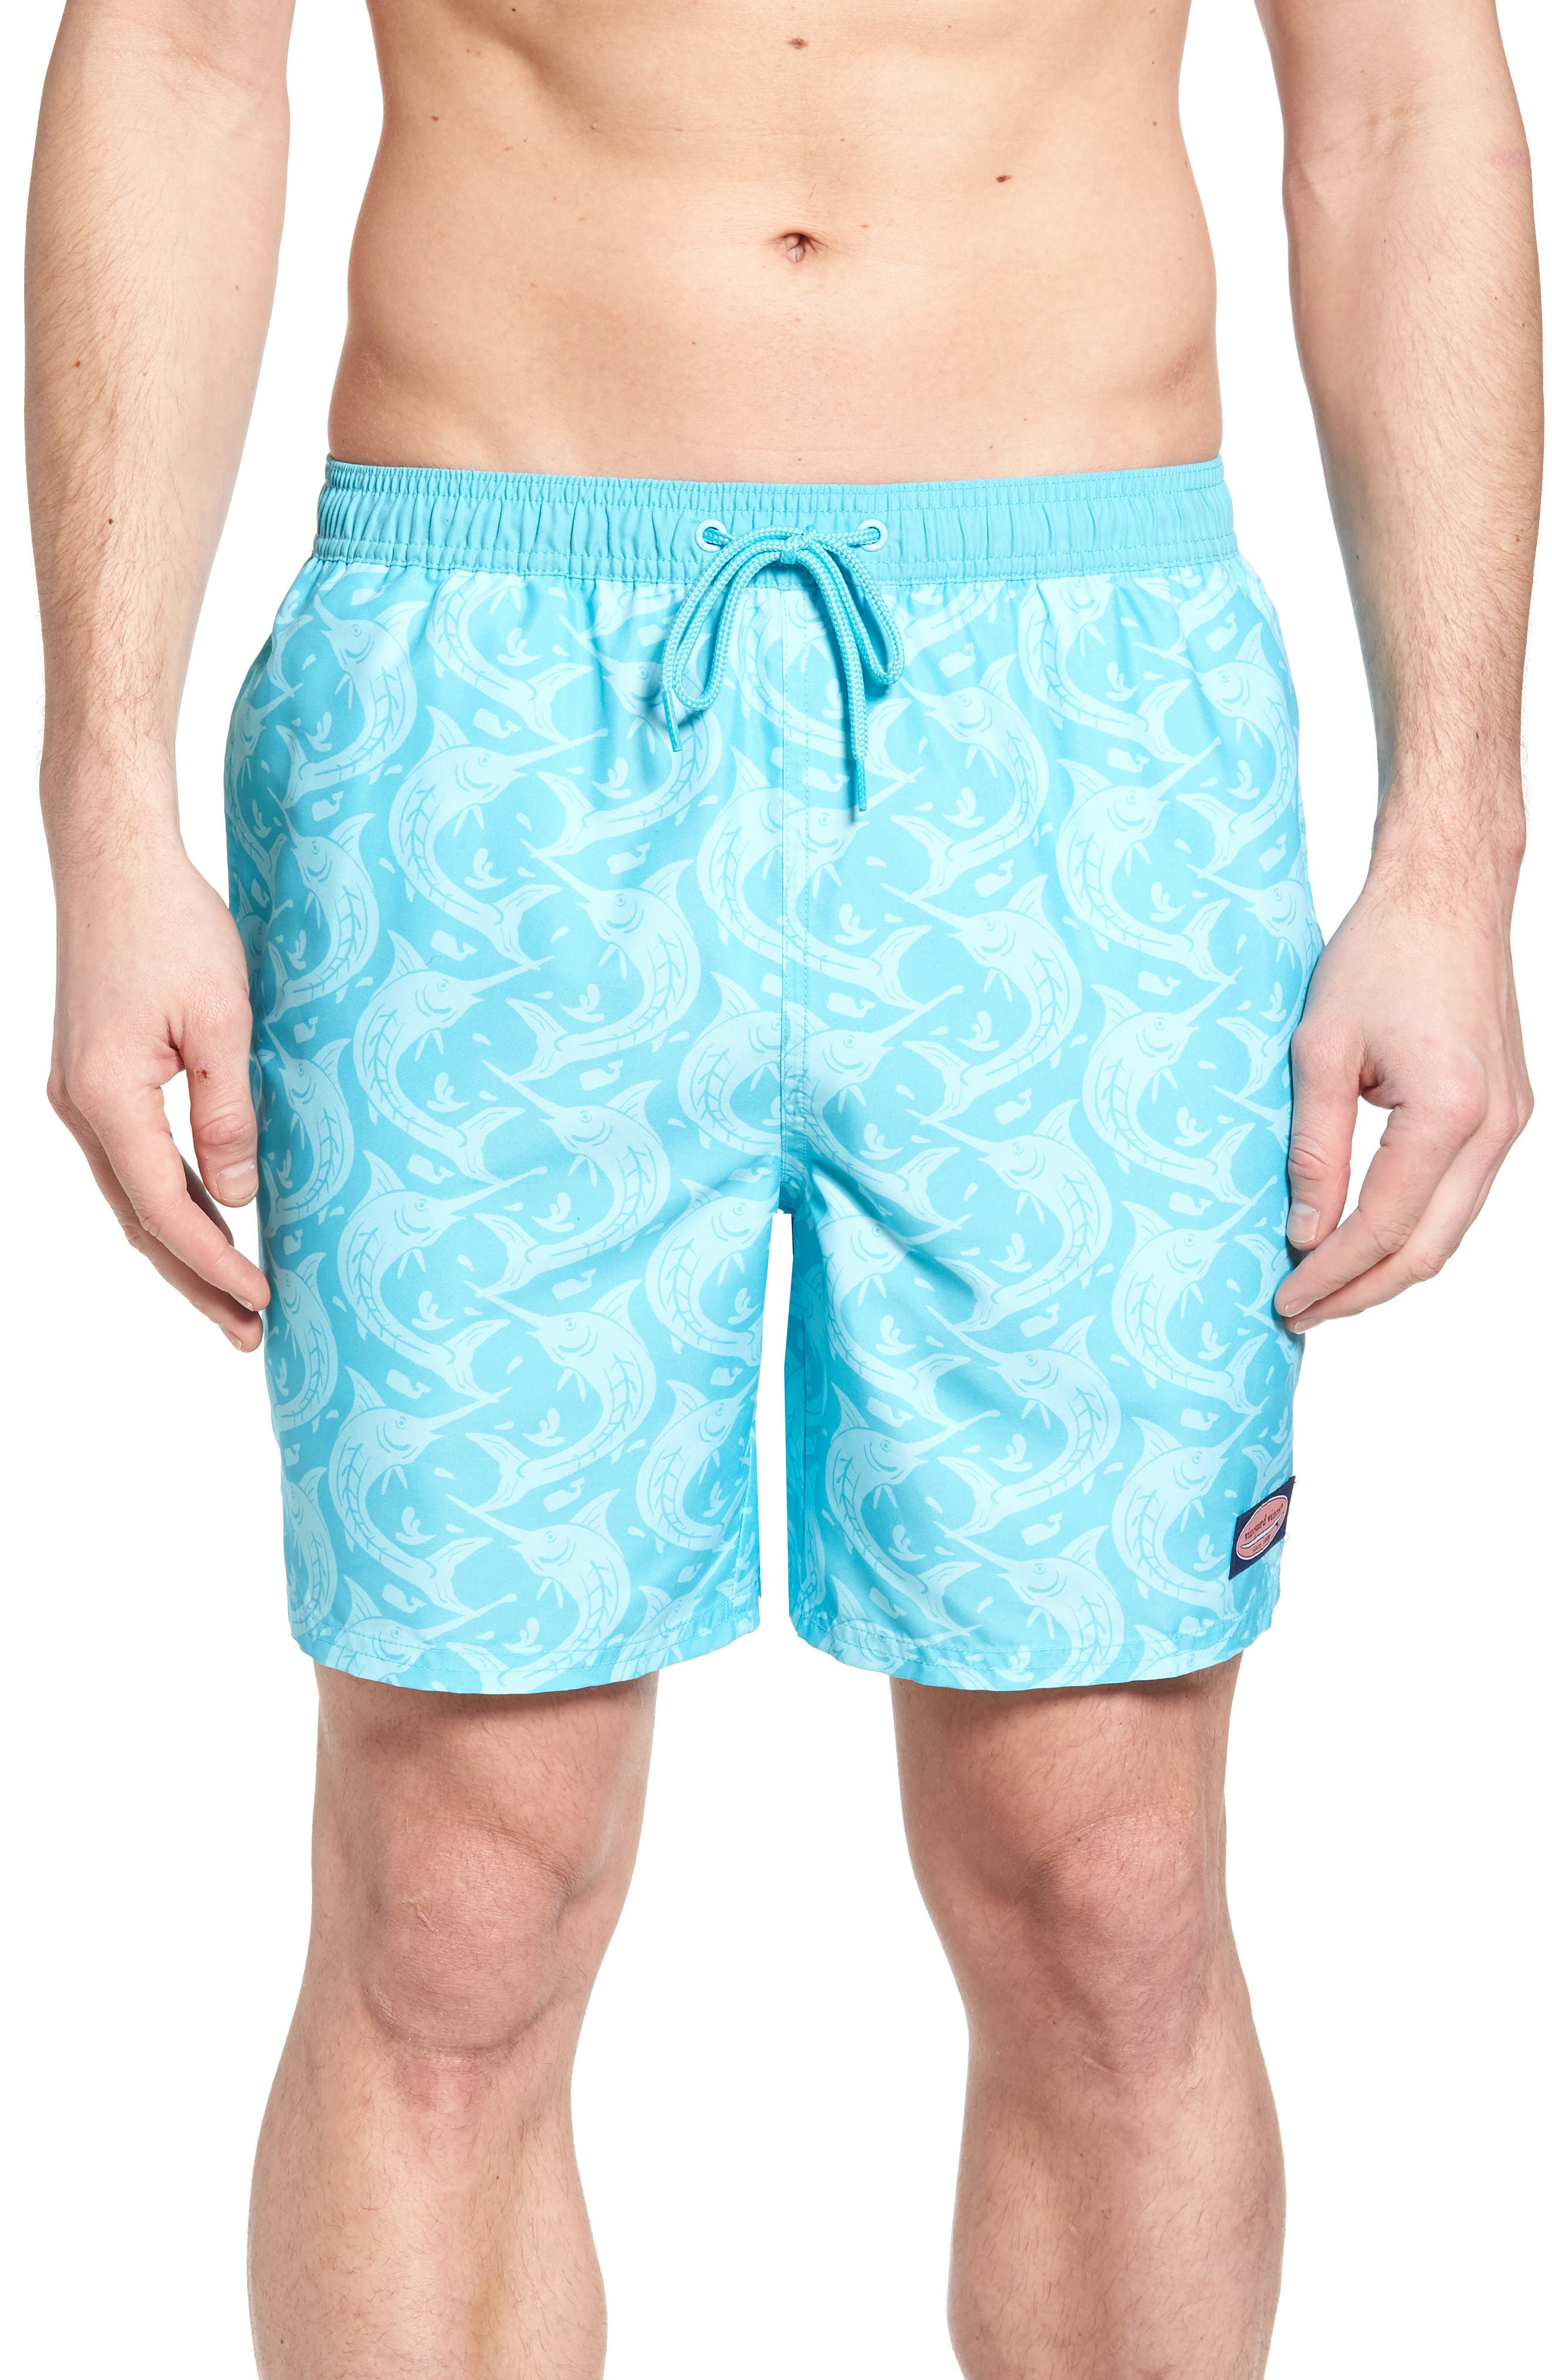 Marlin Out of Water Chappy Swim Trunks,                         Main,                         color, Turquoise